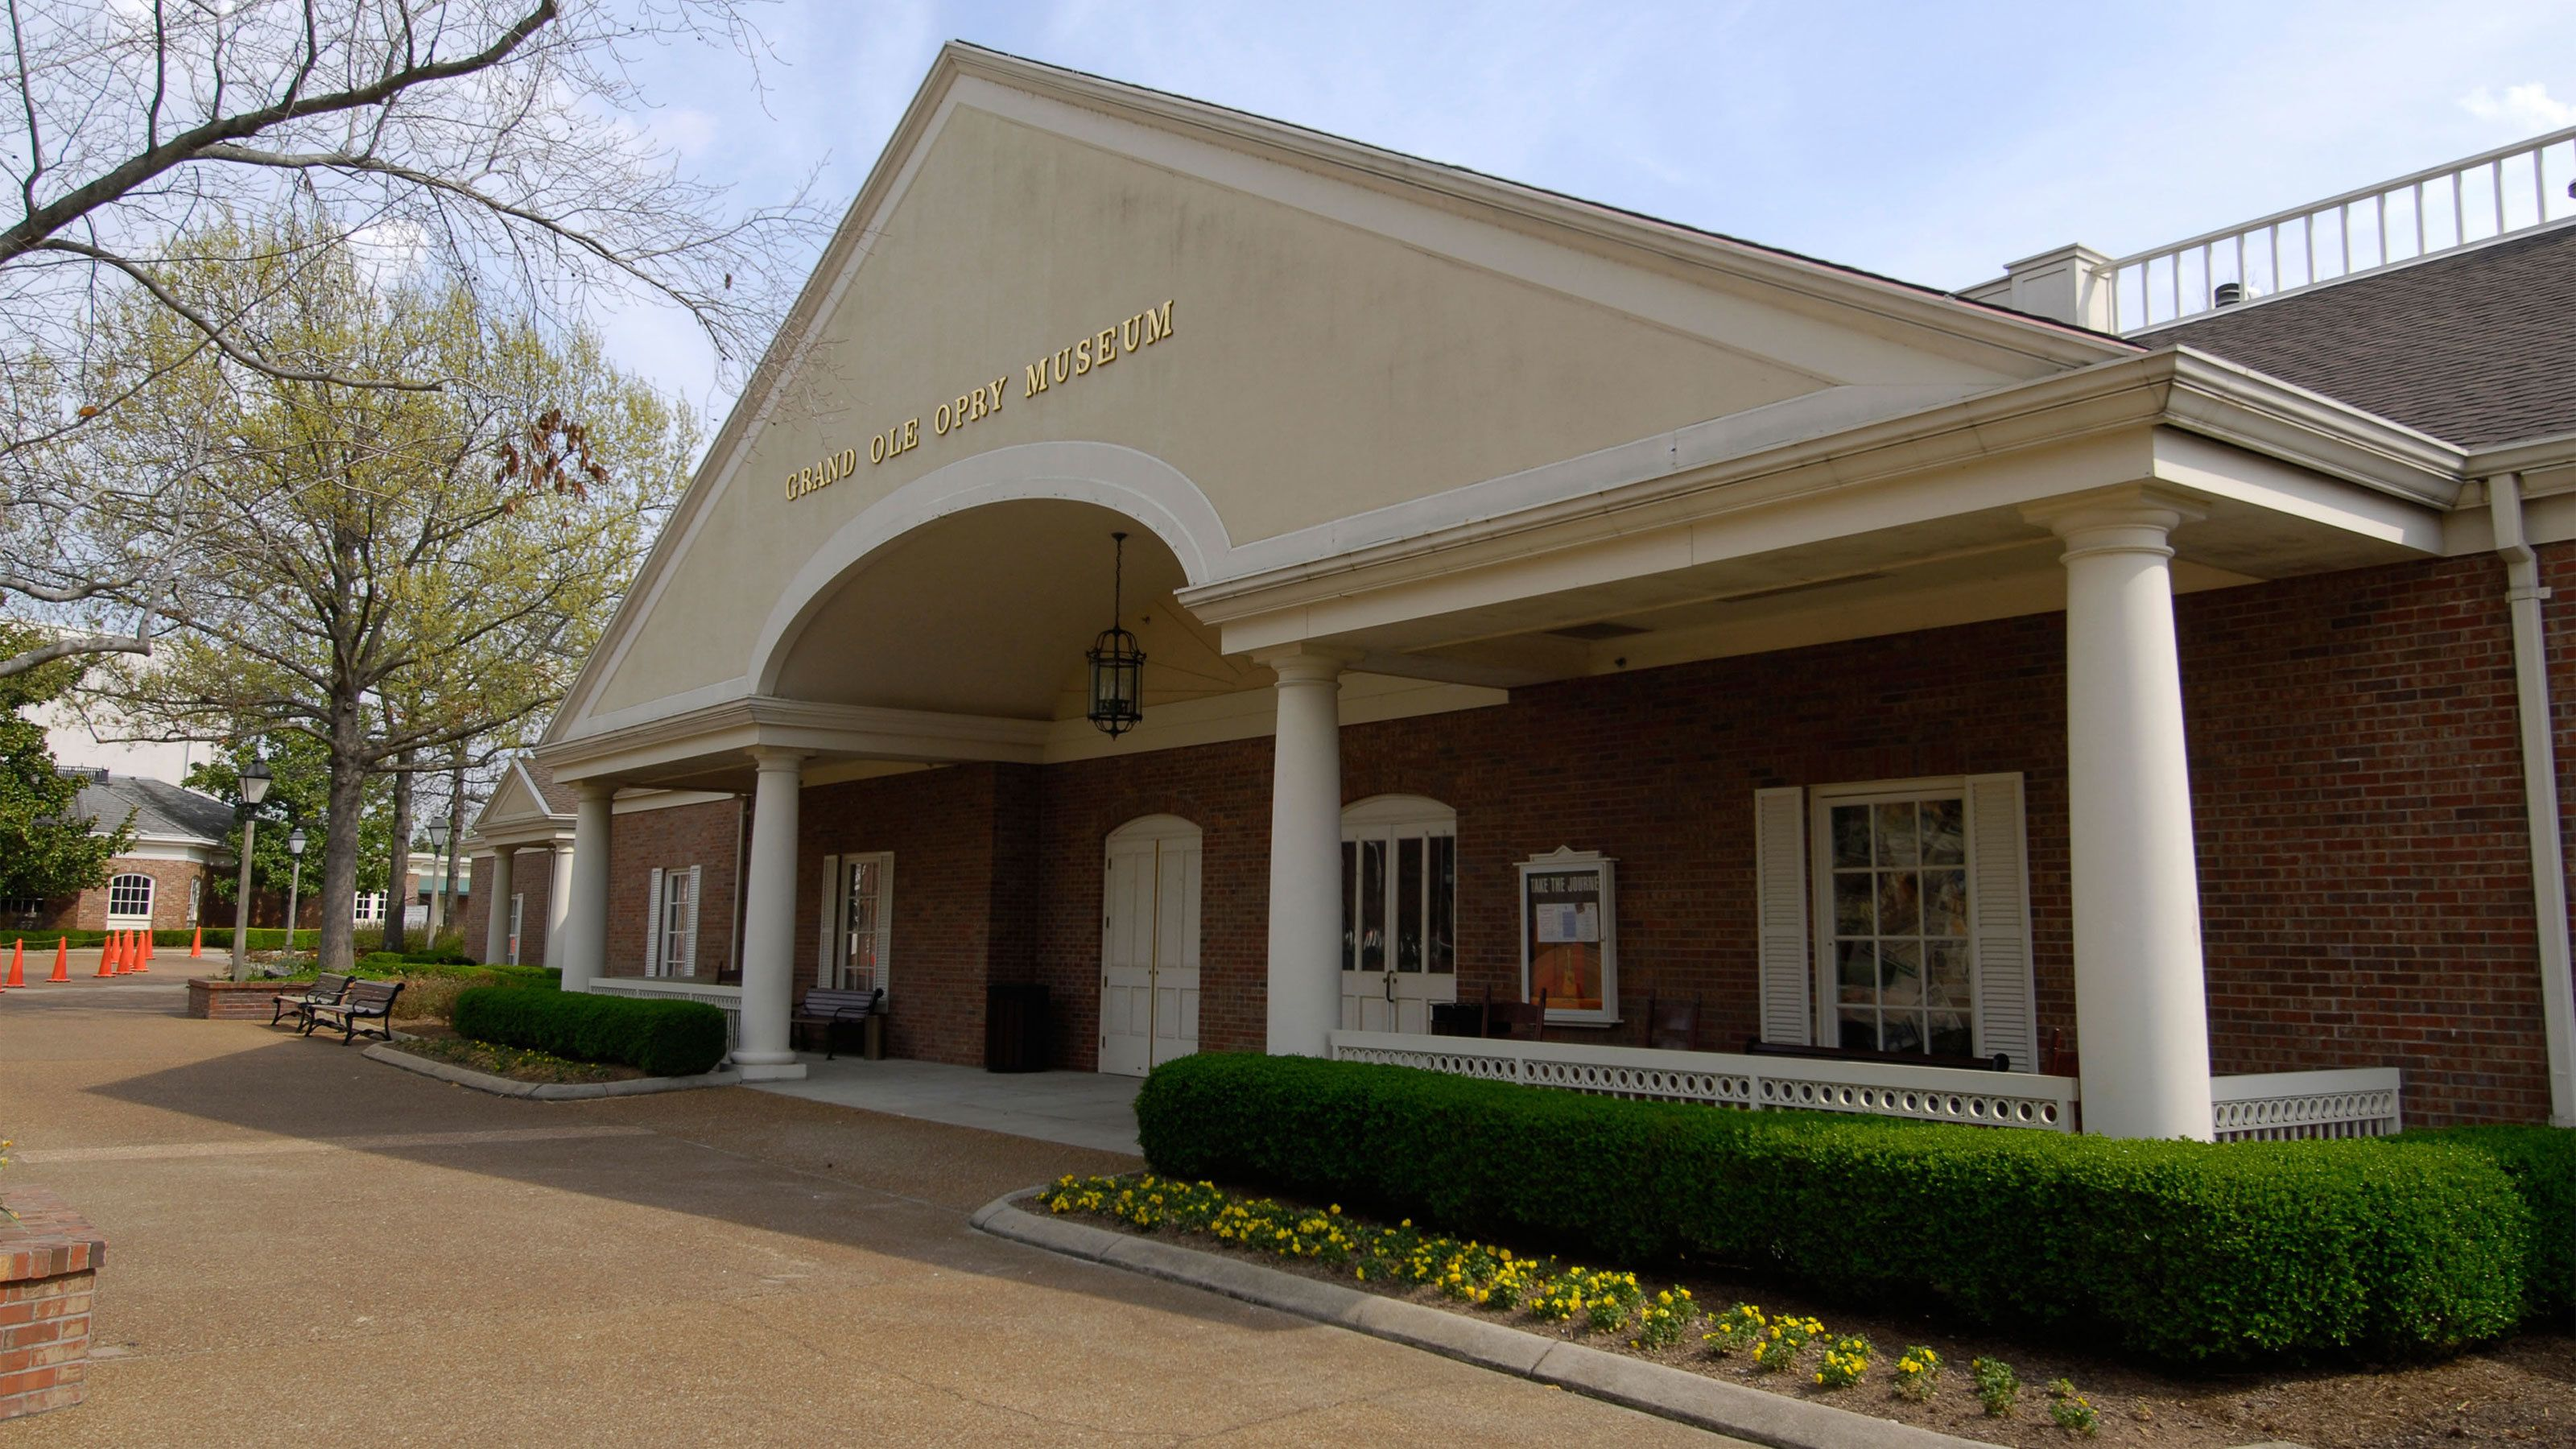 The Grand Ole Opry Museum in Nashville